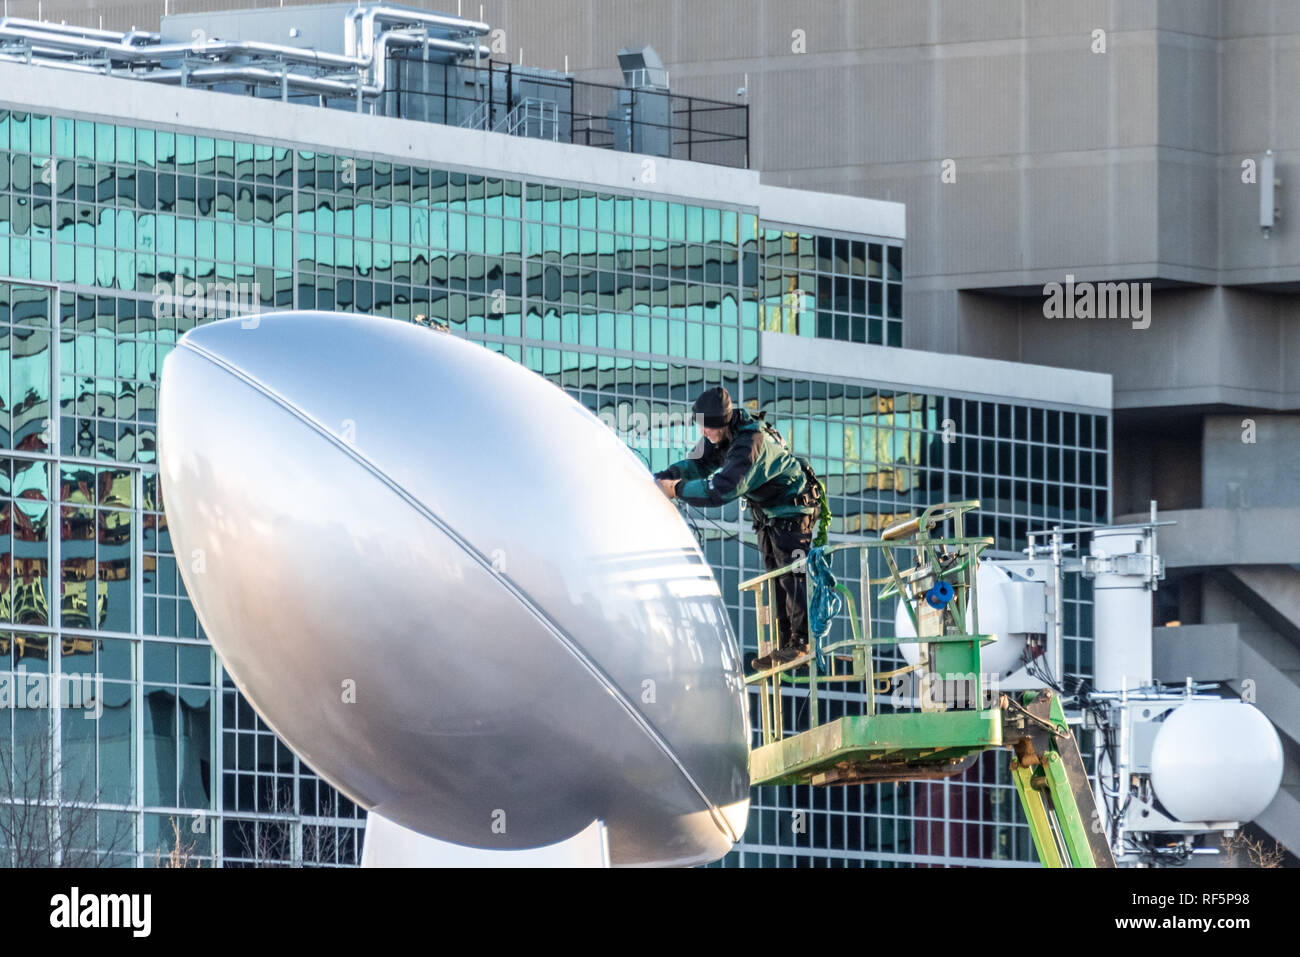 Worker prepares for Super Bowl LIII with installation of giant Vince  Lombardi Trophy sculpture in Atlanta f2f28a81d